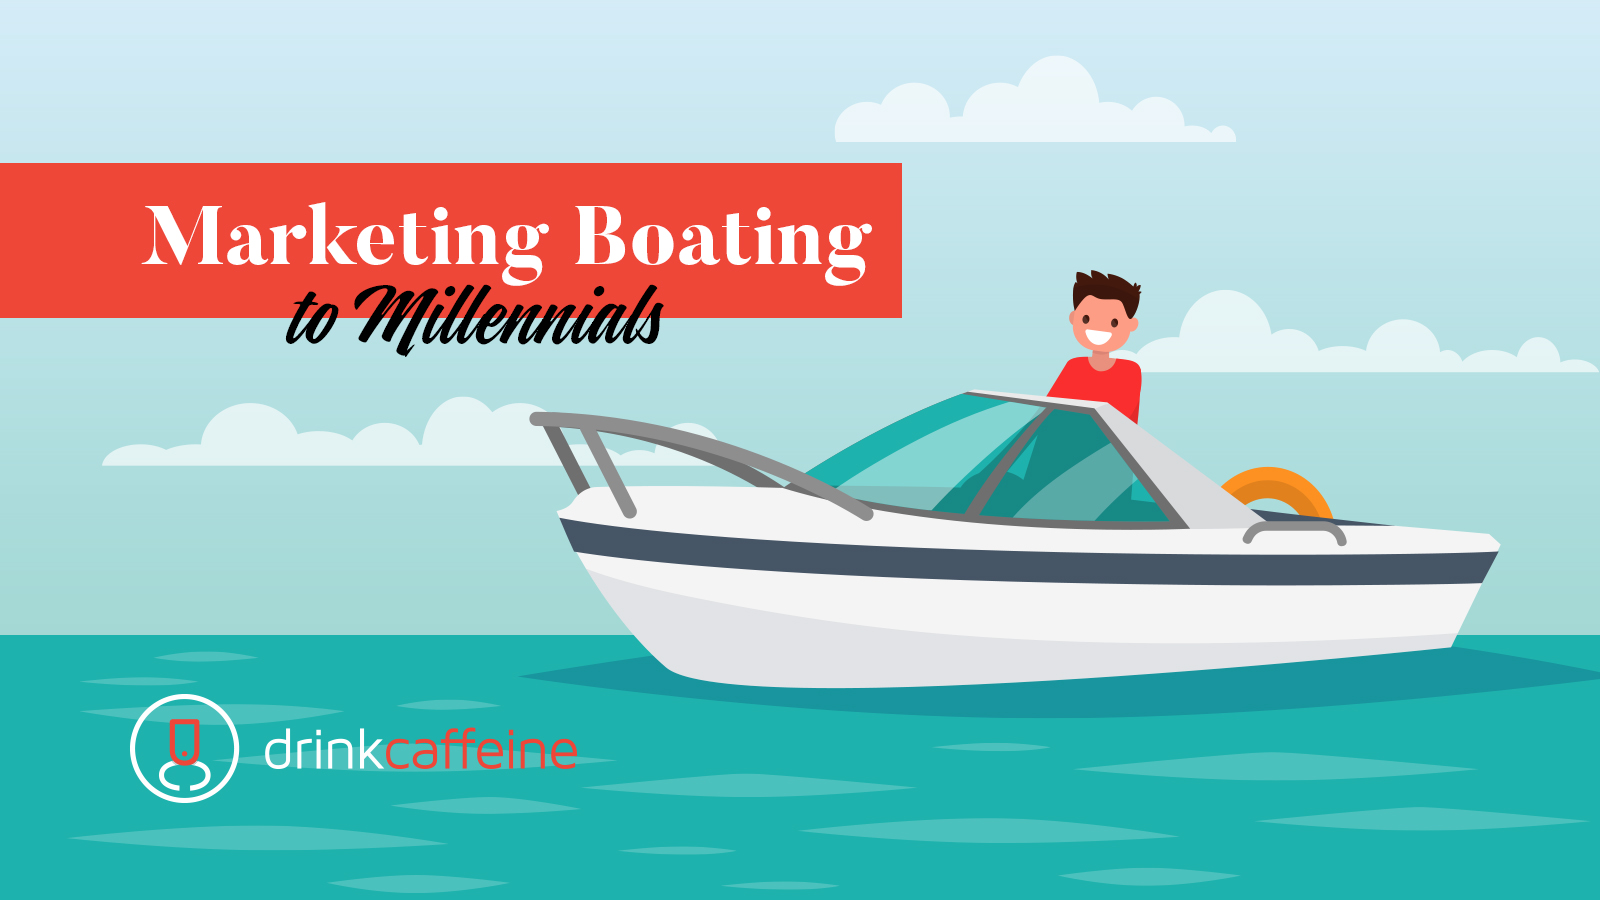 How to market boating to millennials